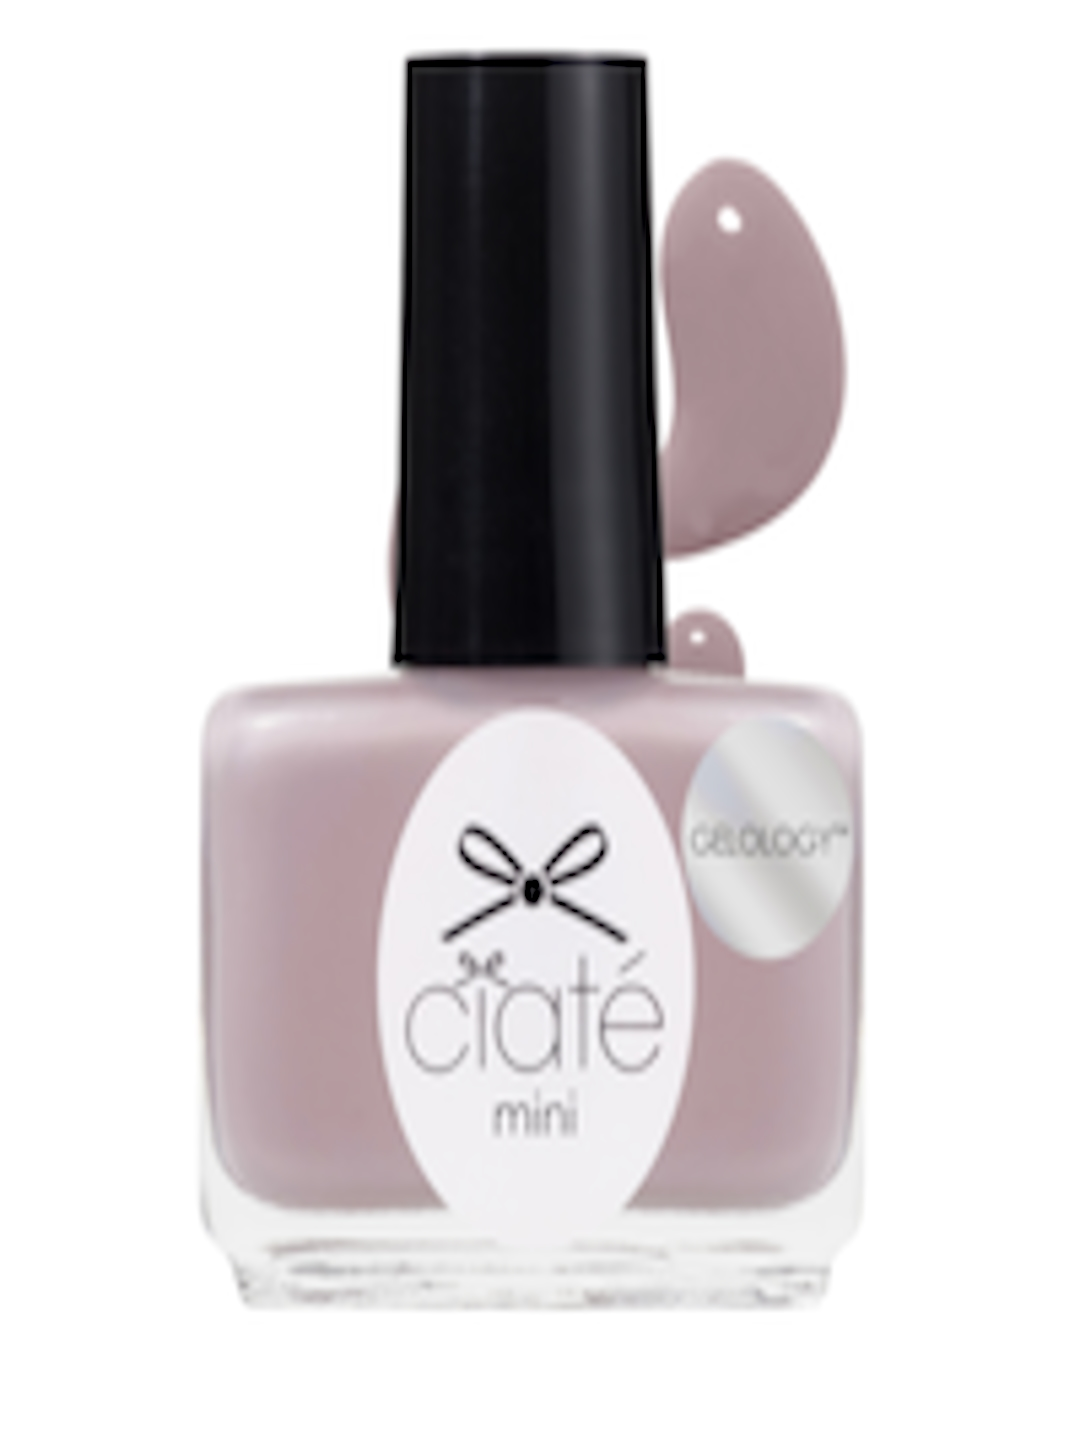 Buy Ciate London Iced Frappe Mini Paint Pot Gelology Nail Polish PPMG081 -  - Personal Care for Women